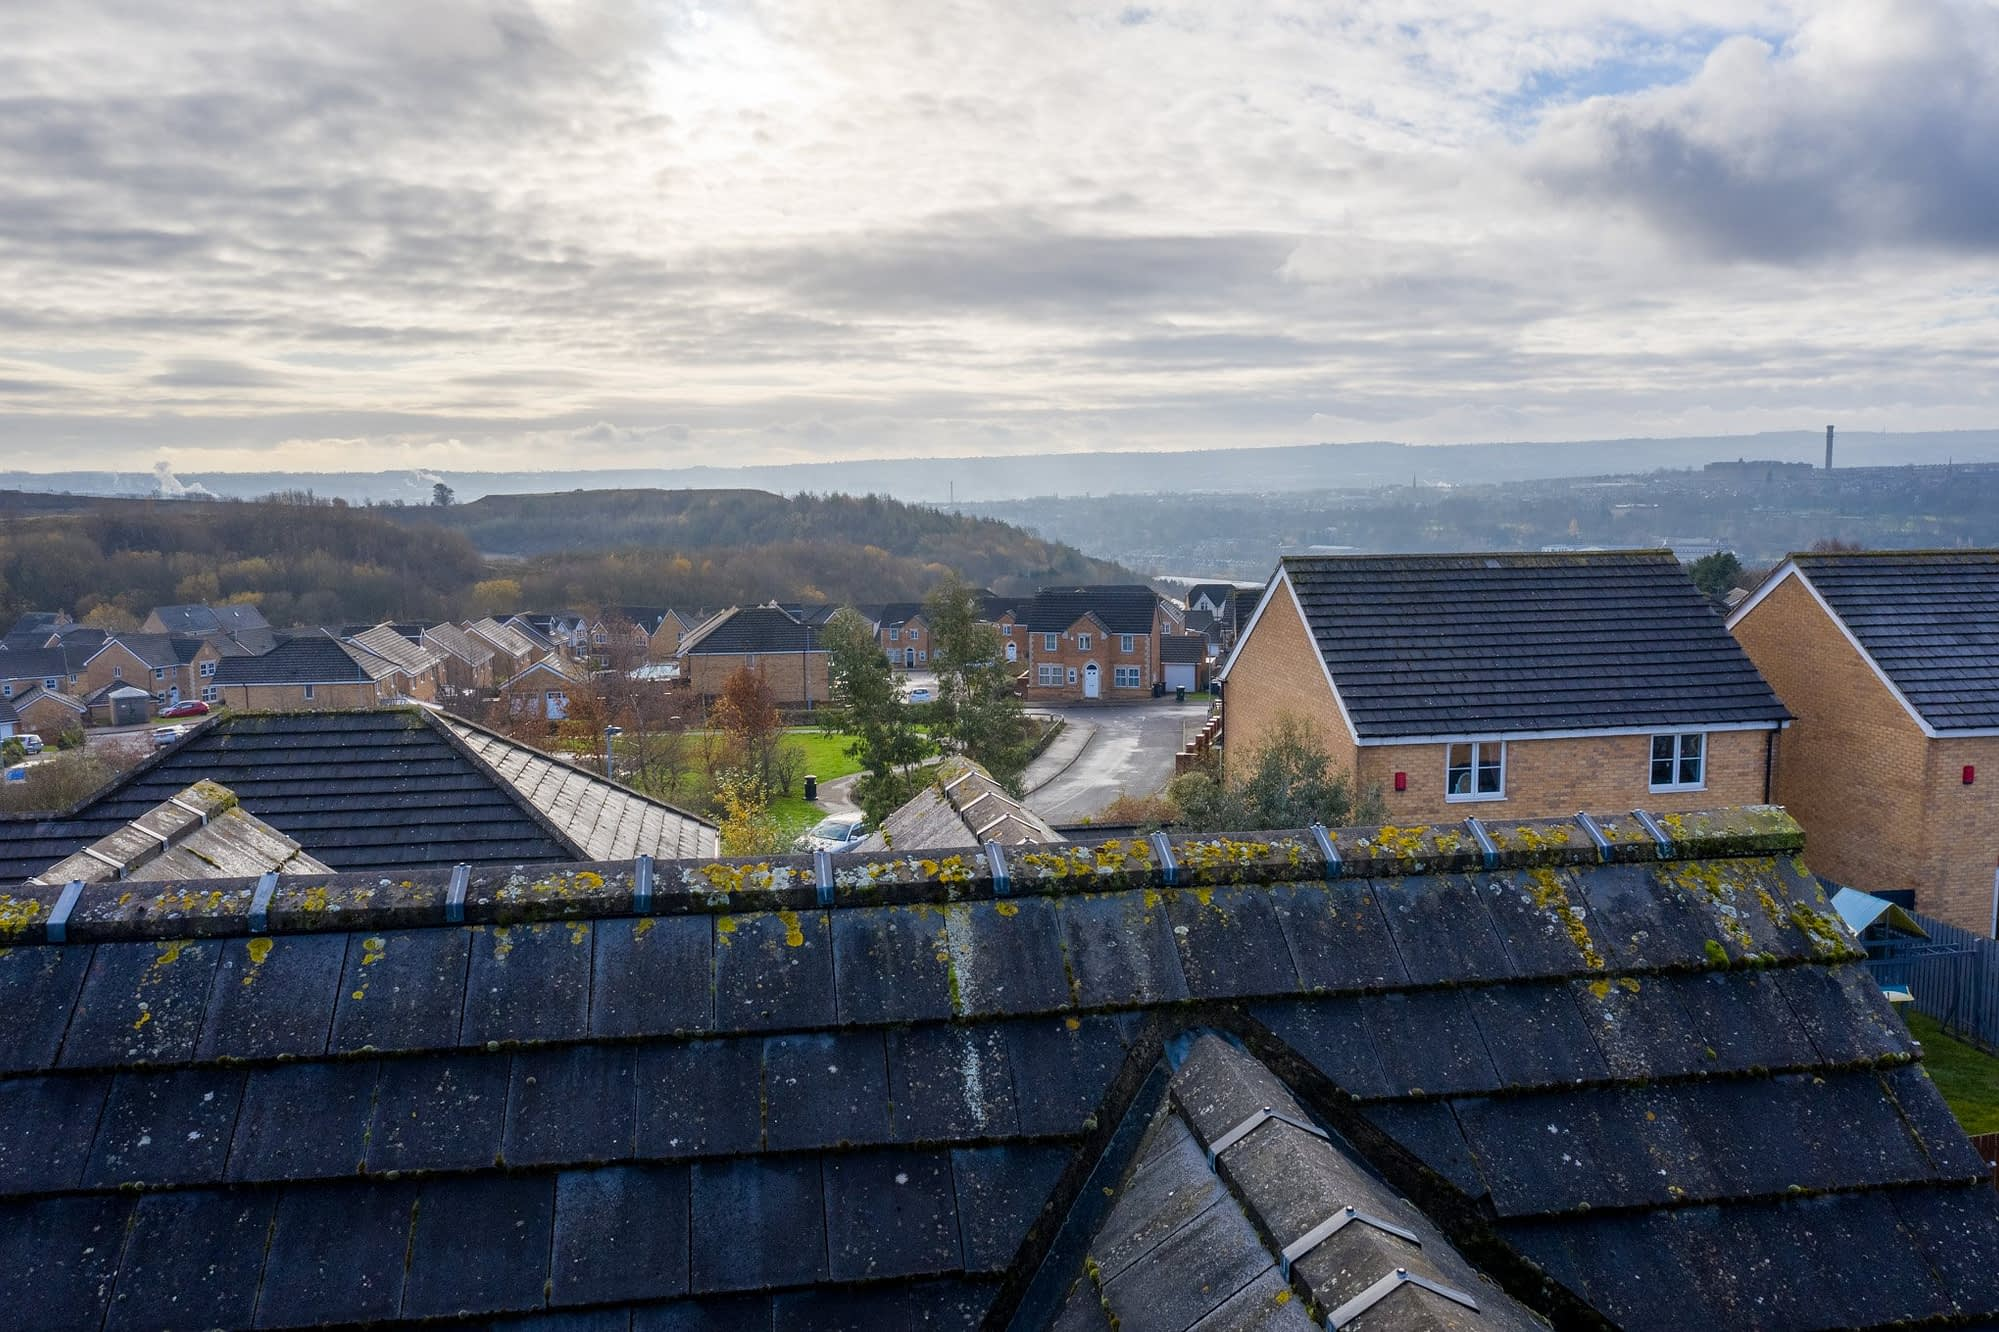 Photo from Drone Roof Inspection